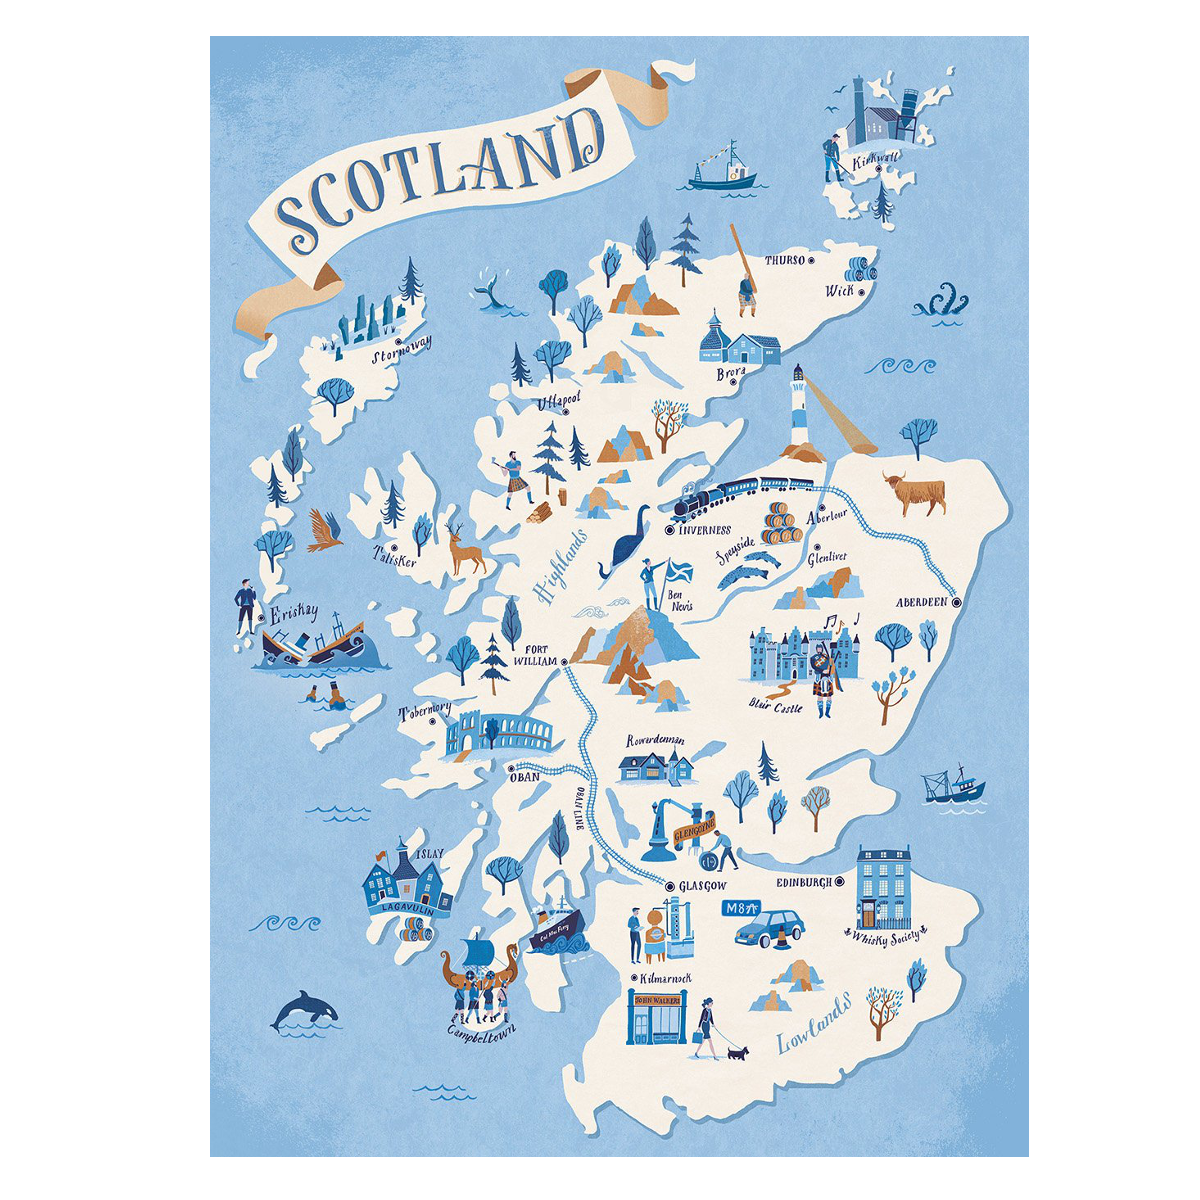 image relating to Printable Map of Scotland identify Scotland Map A3 - Framed Prints (approx A3 Dimension), Giclée, Gocco Electronic Prints, Edinburgh and Scottish - The Crimson Doorway Gallery - Artwork Prints, Structure